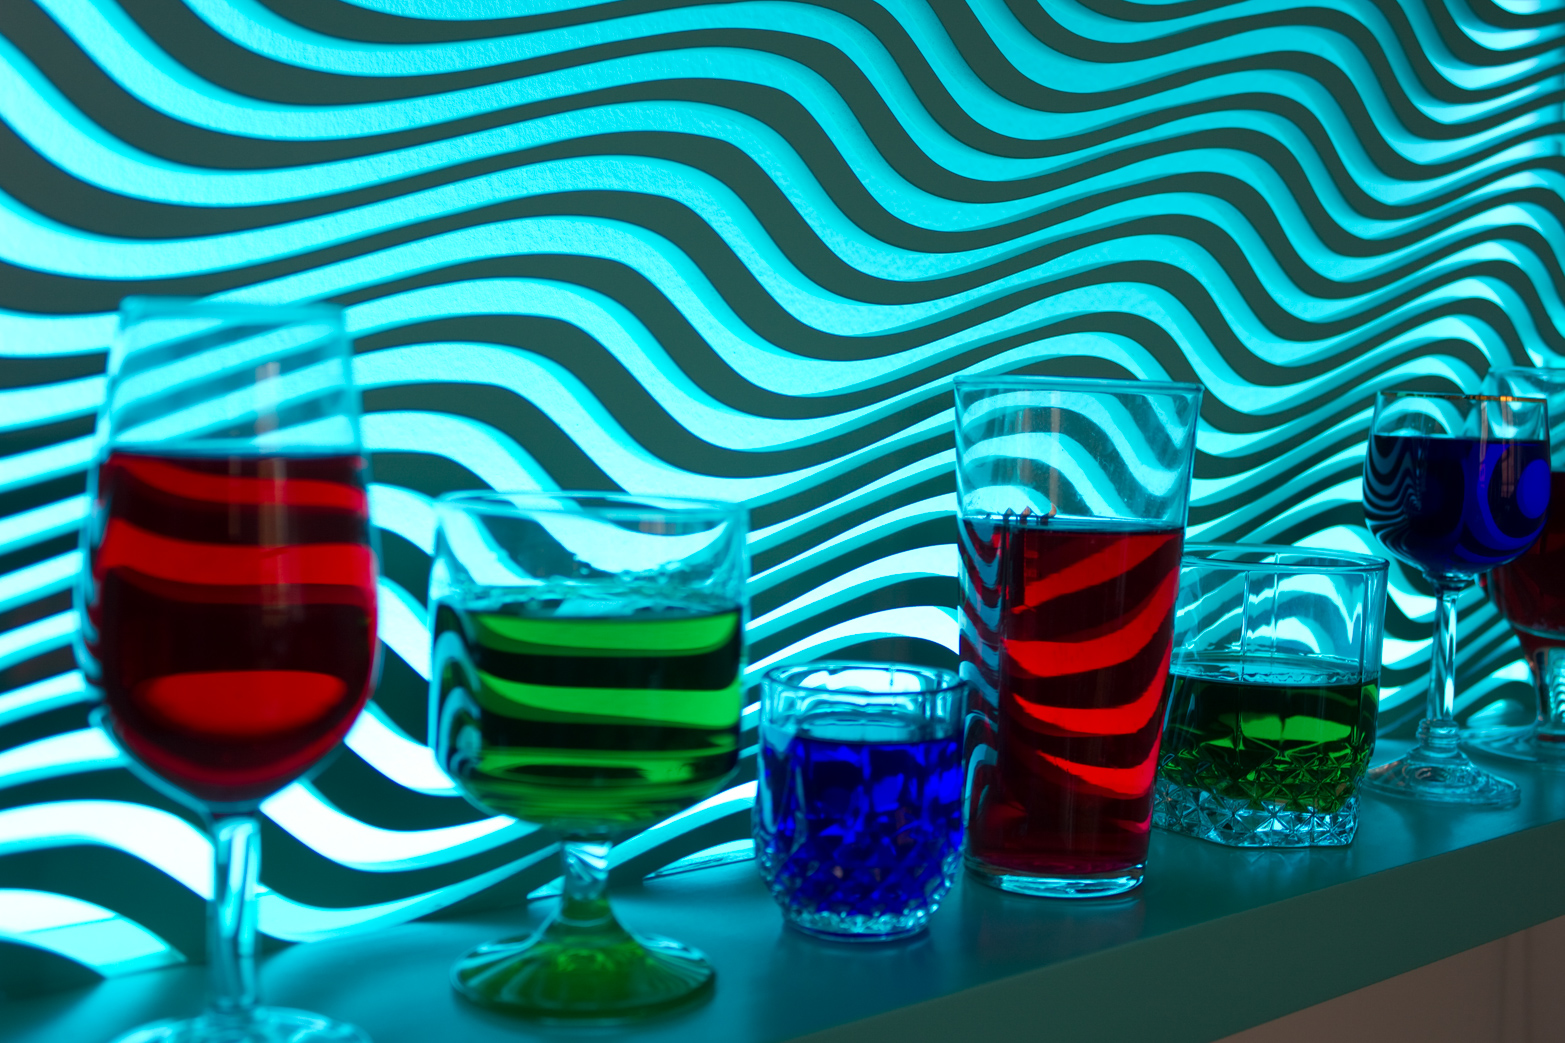 David Ferrando Giraut, V.2 - Campari, Peppermint, Curaçao (Confessional), 2015. (Detail.) From the series Vortex. Lacquered MDF and wood, LED lights, programmer, glasses, Campari, Peppermint, Curaçao.